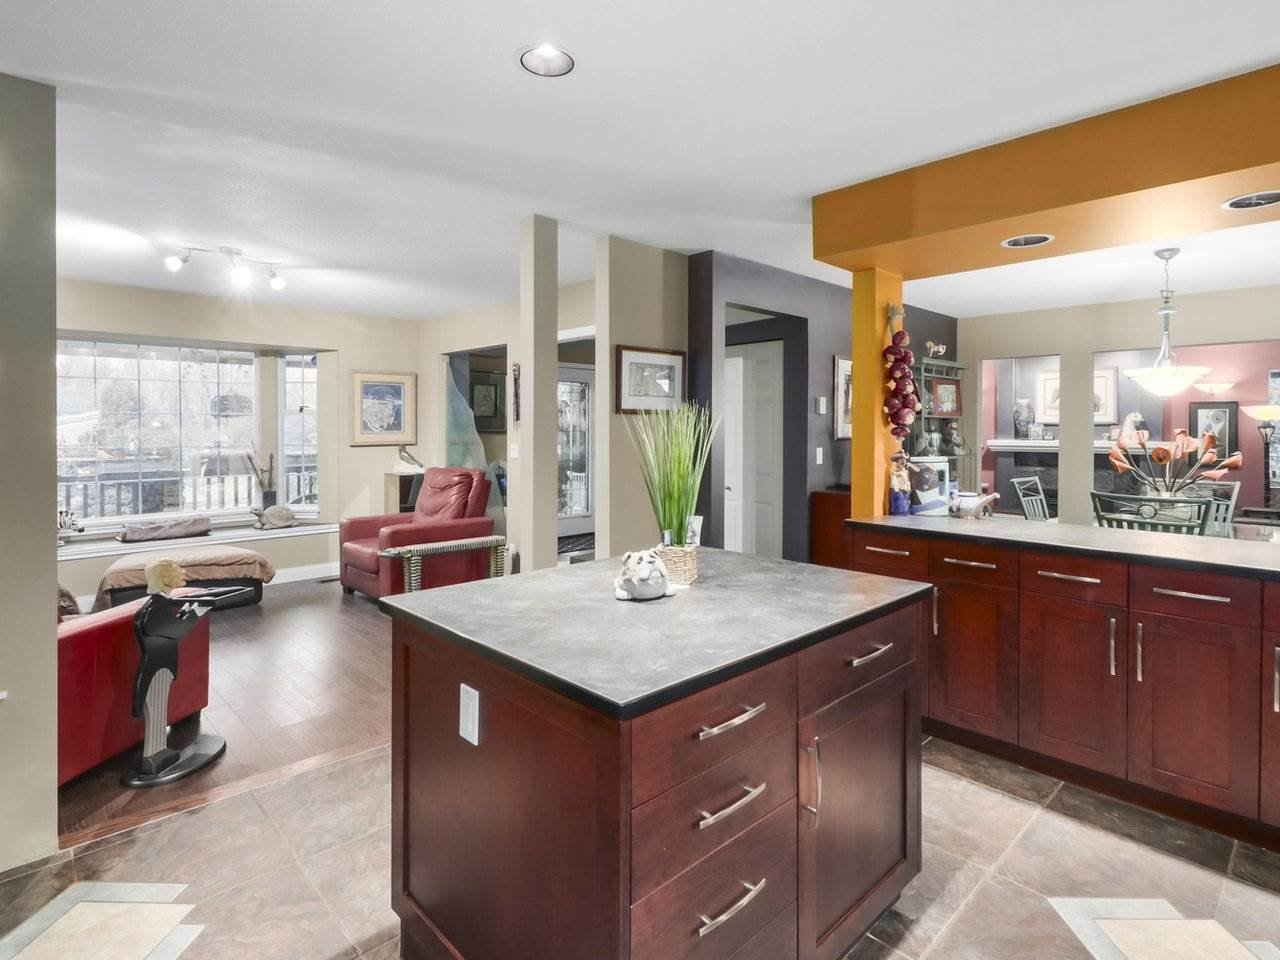 Photo 10: Photos: 13957 32 Avenue in Surrey: Elgin Chantrell House for sale (South Surrey White Rock)  : MLS®# R2466206